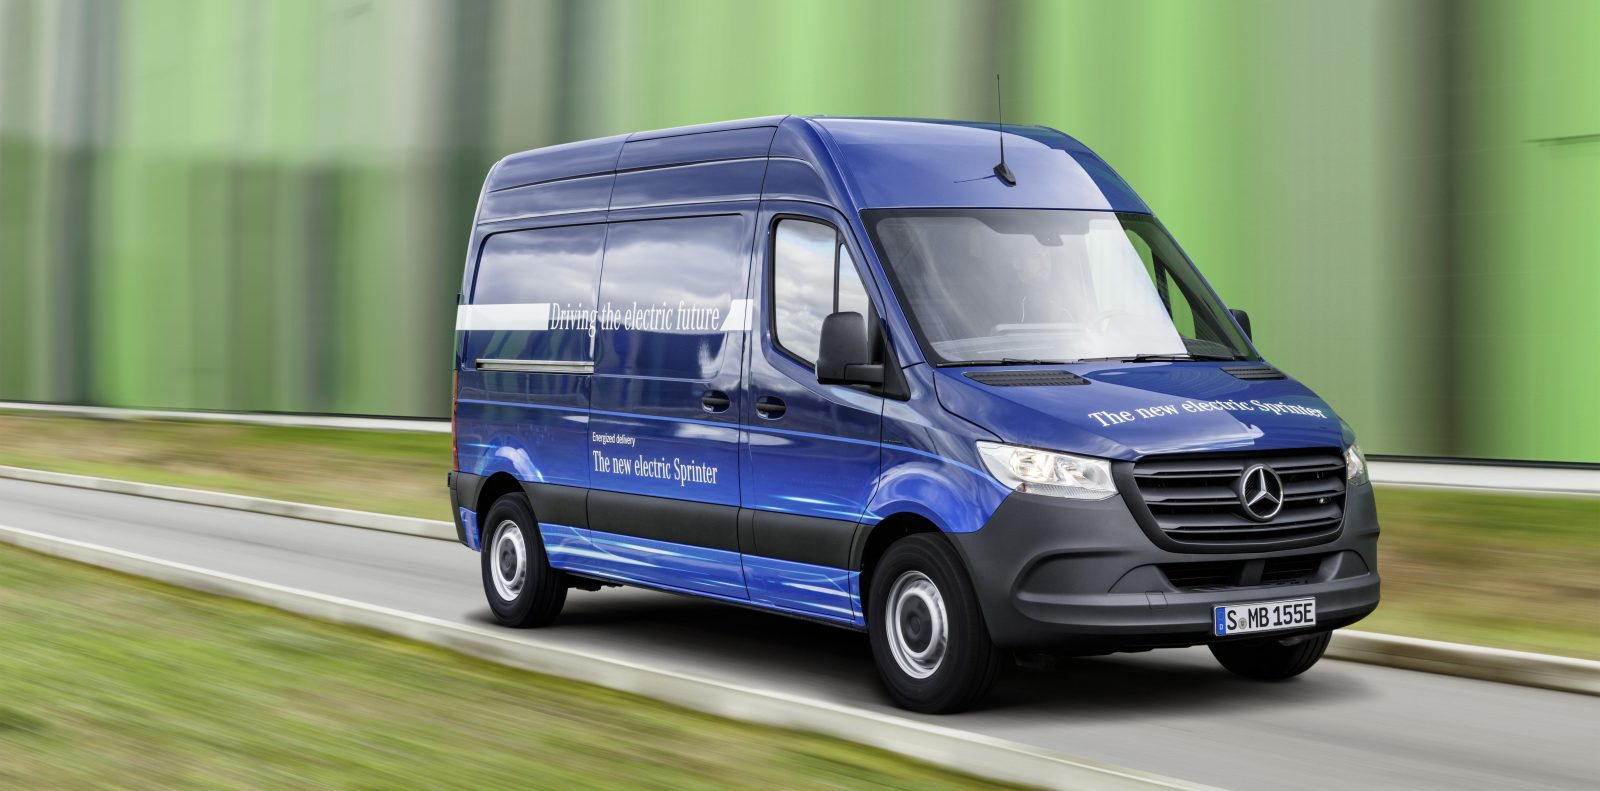 db795f19a1 Elon Musk would like Tesla to work with Mercedes-Benz on an electric  Sprinter van